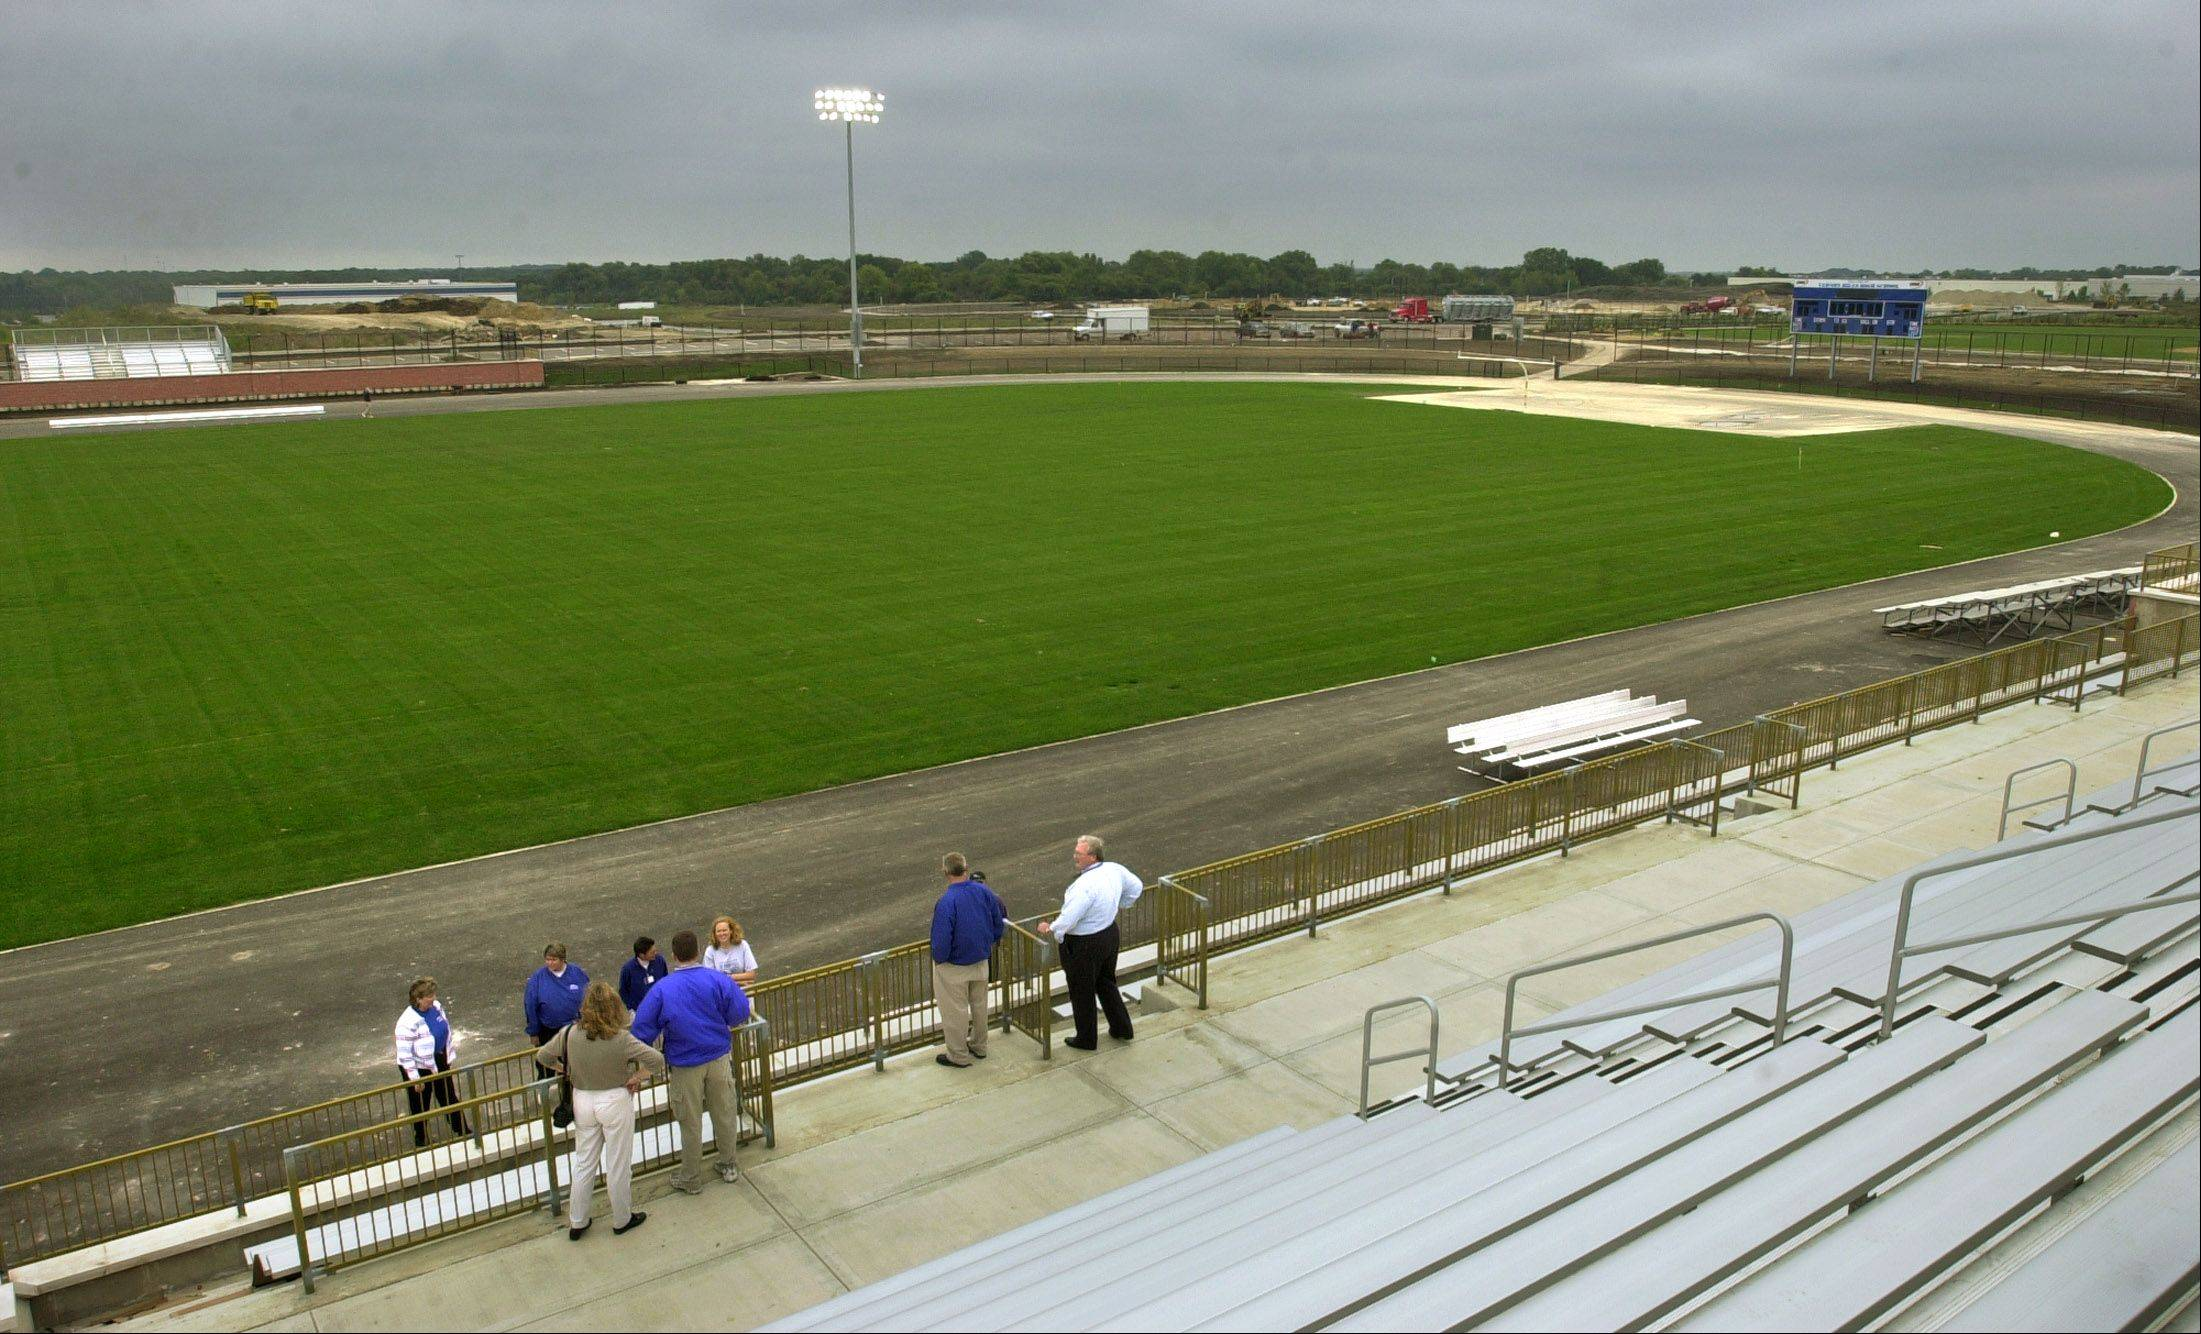 The Vernon Hills High School football stadium opened in 2002. A community group is raising money to replace the grass with a longer-lasting artificial material.